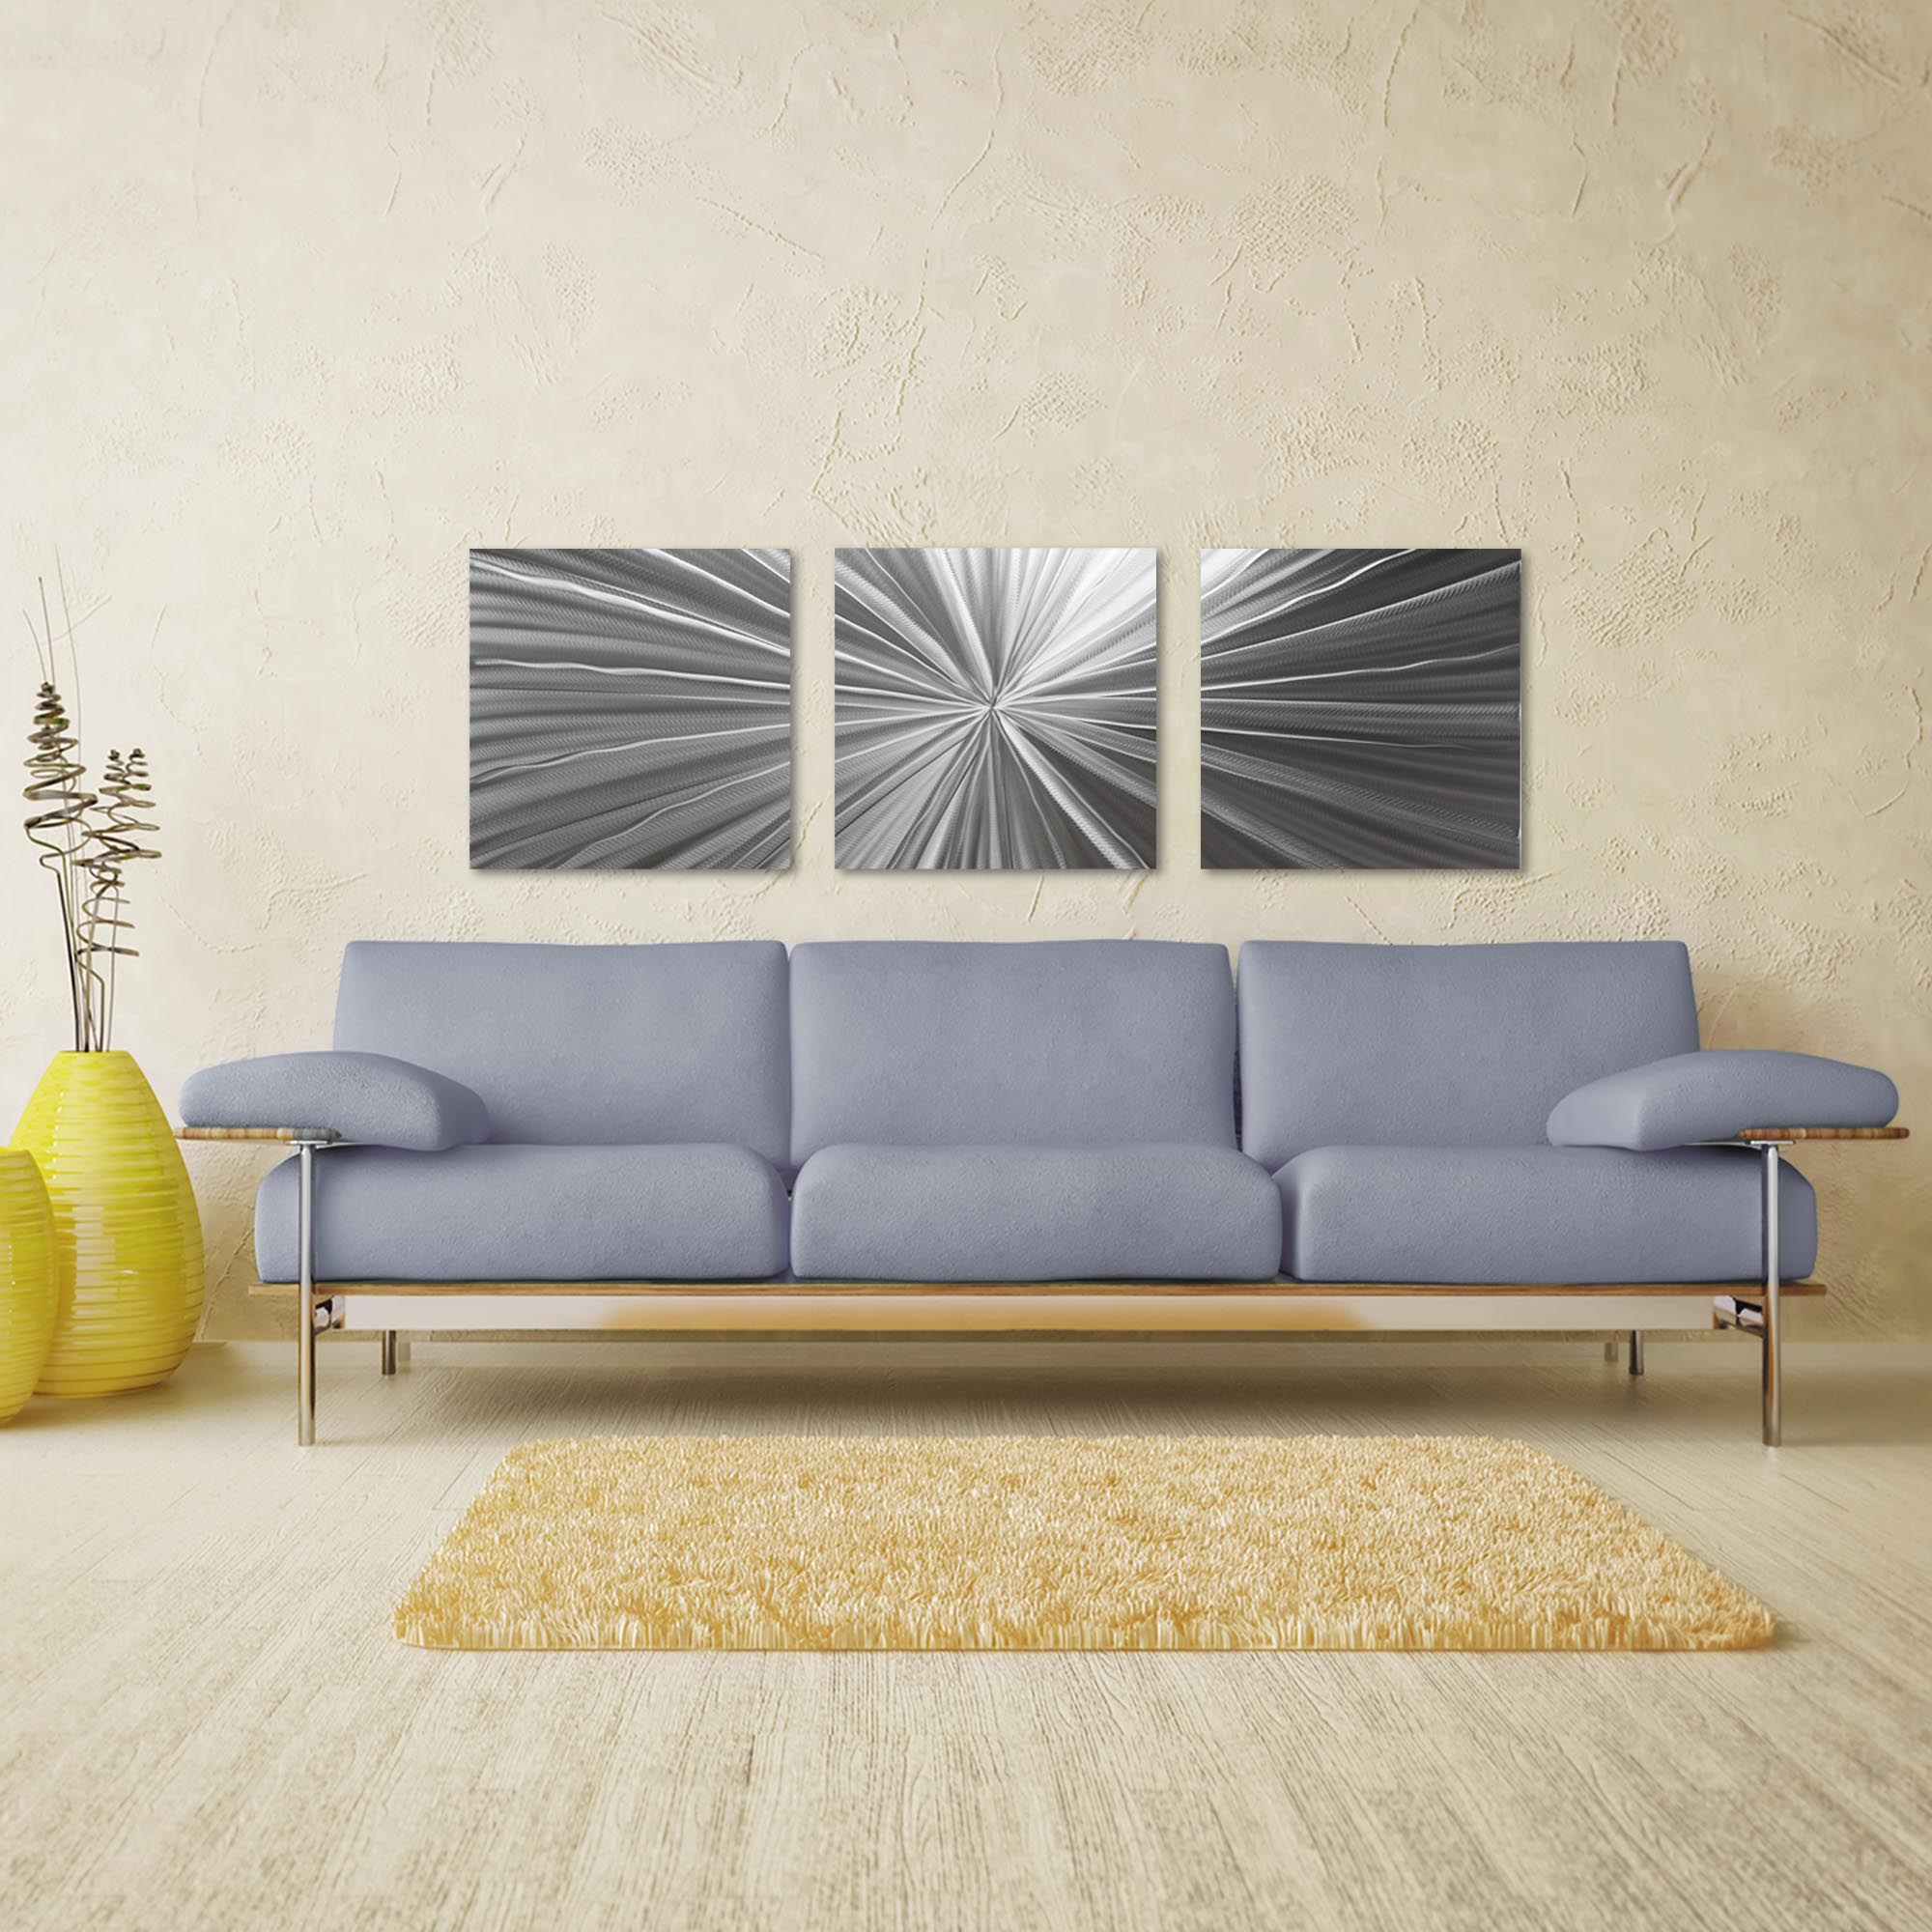 Tantalum Triptych Large 70x22in. Metal or Acrylic Contemporary Decor - Lifestyle View